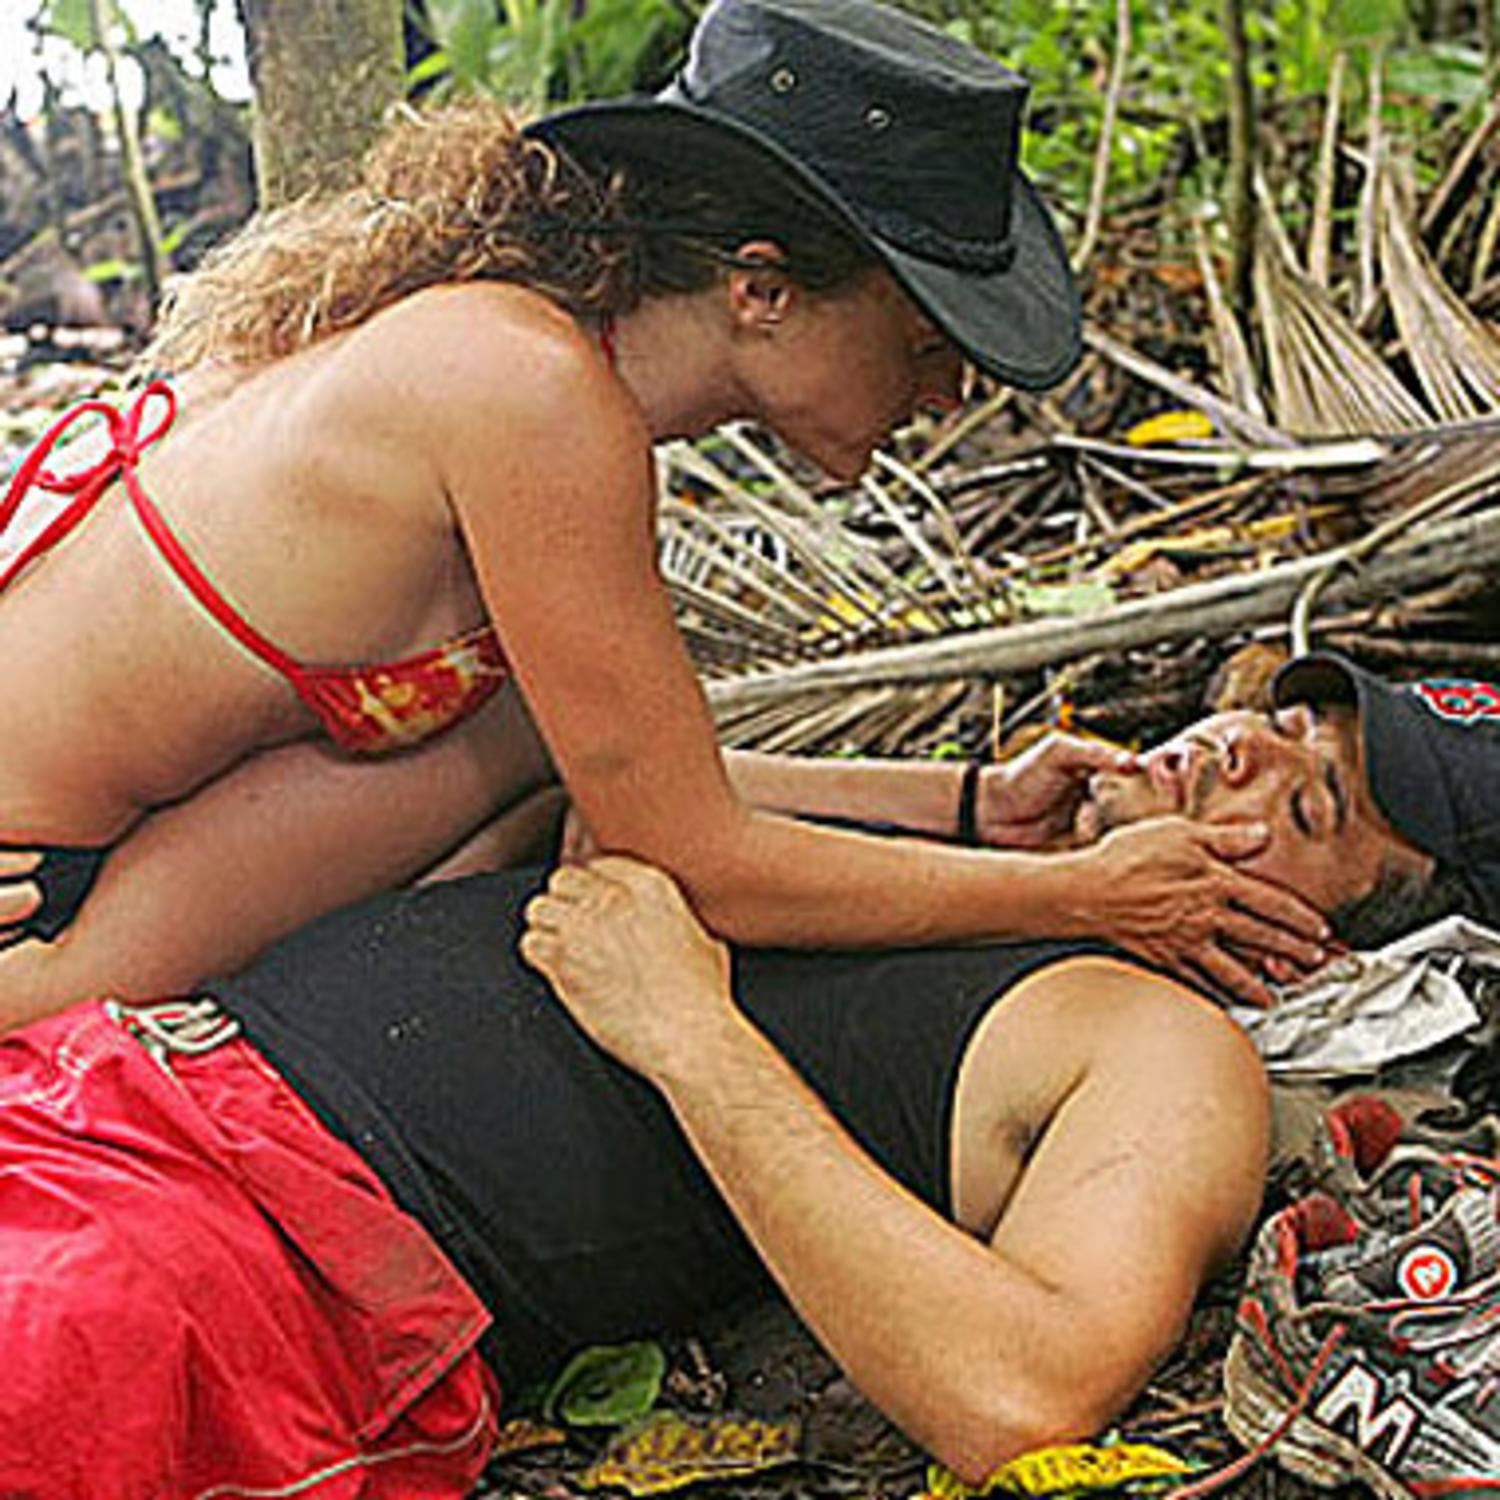 Survivor heros villains nude sex female